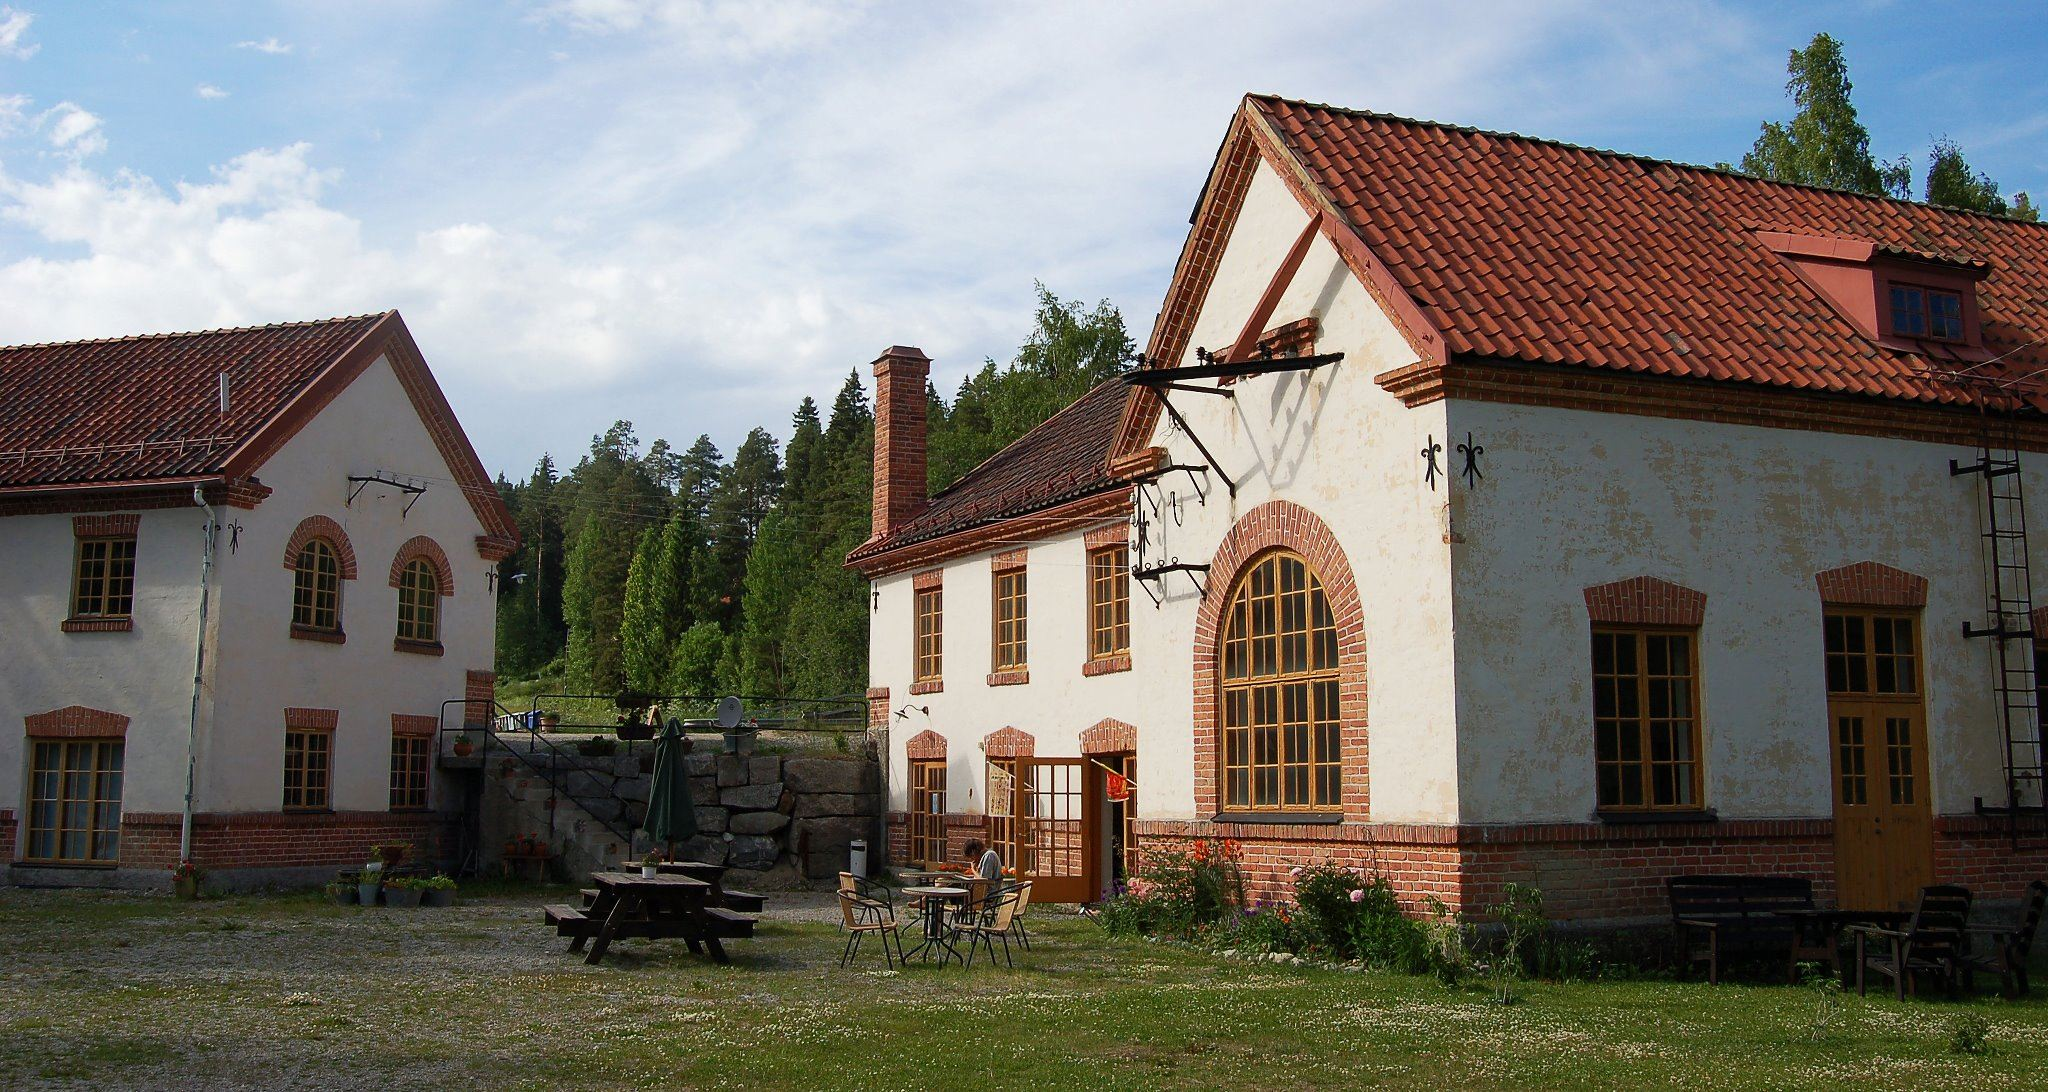 Franshammar Old Power Station & Hostel